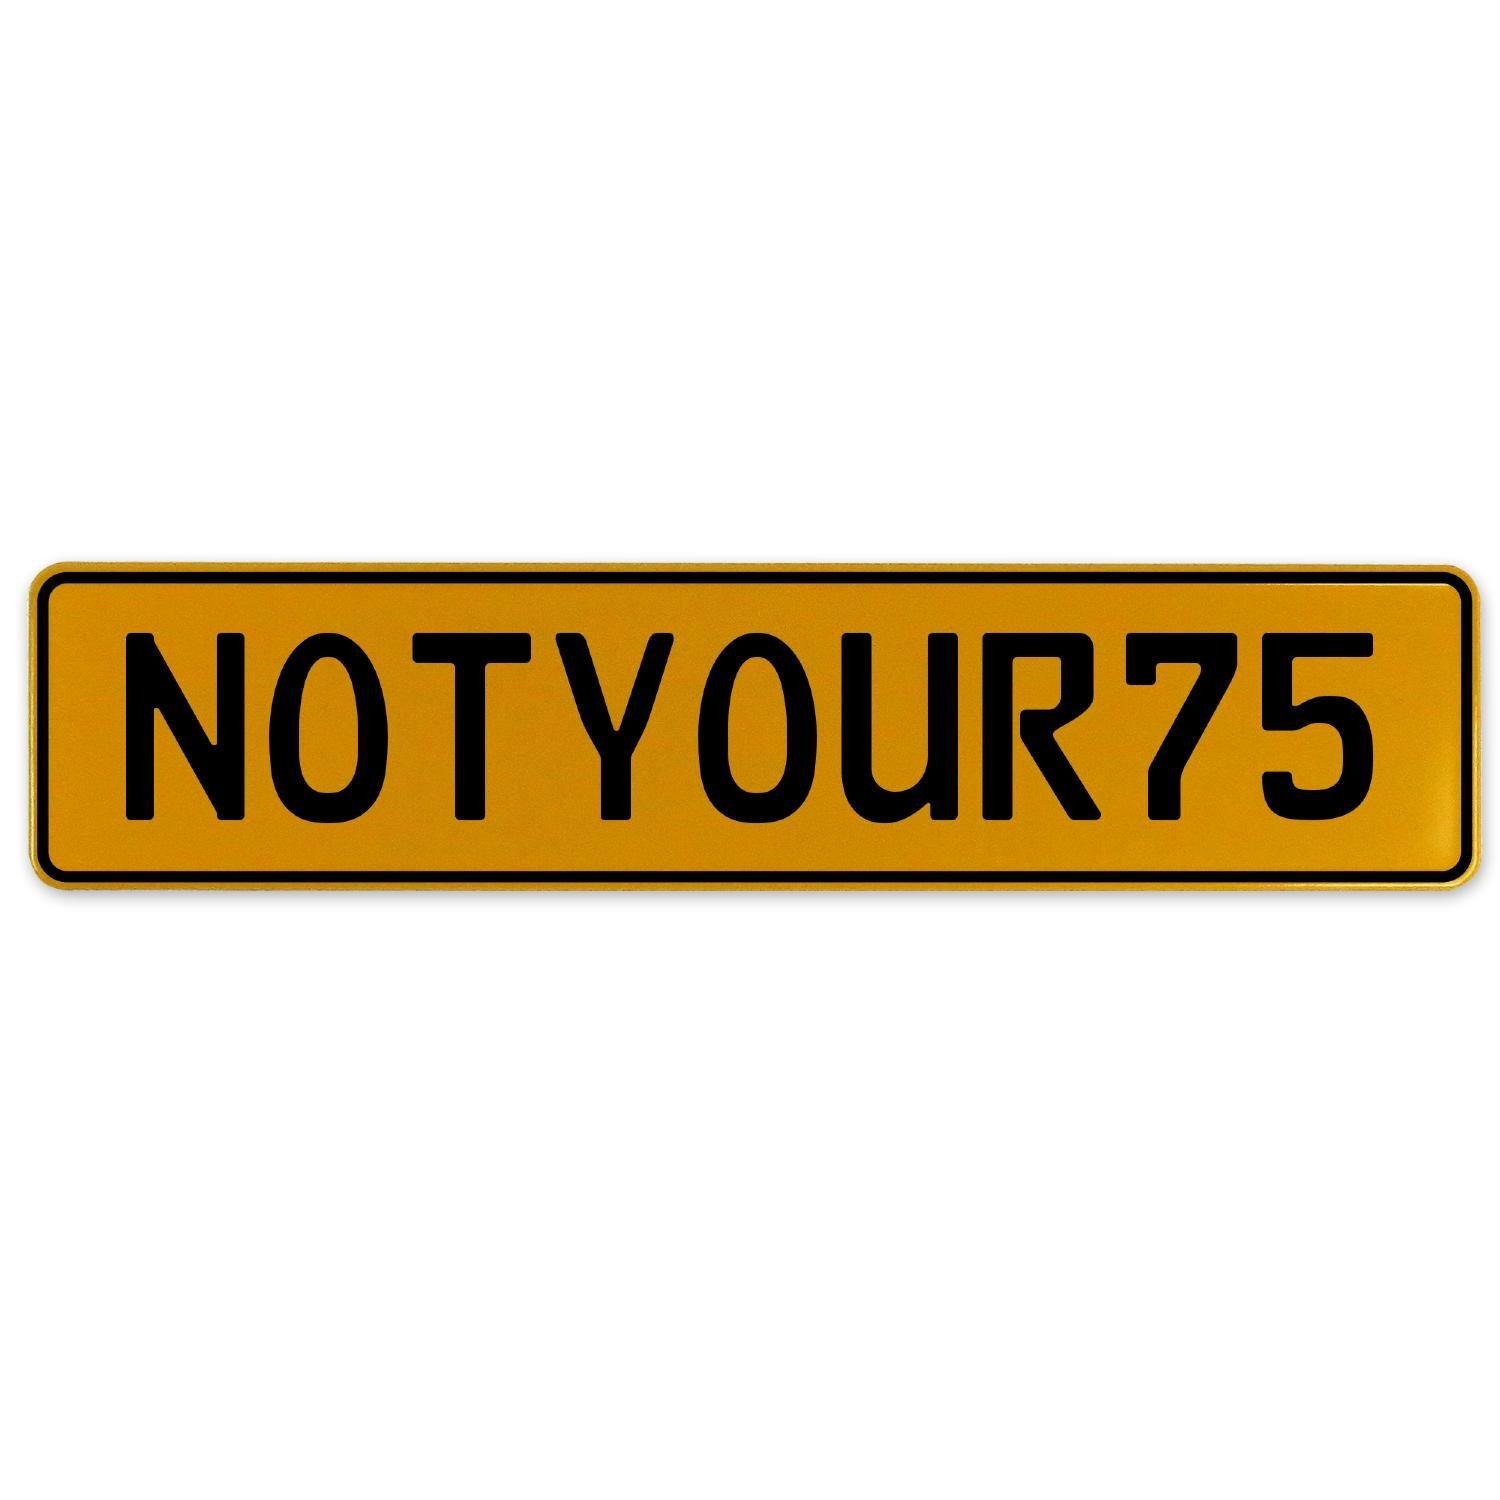 Vintage Parts 560513 NOTYOUR75 Yellow Stamped Aluminum European Plate